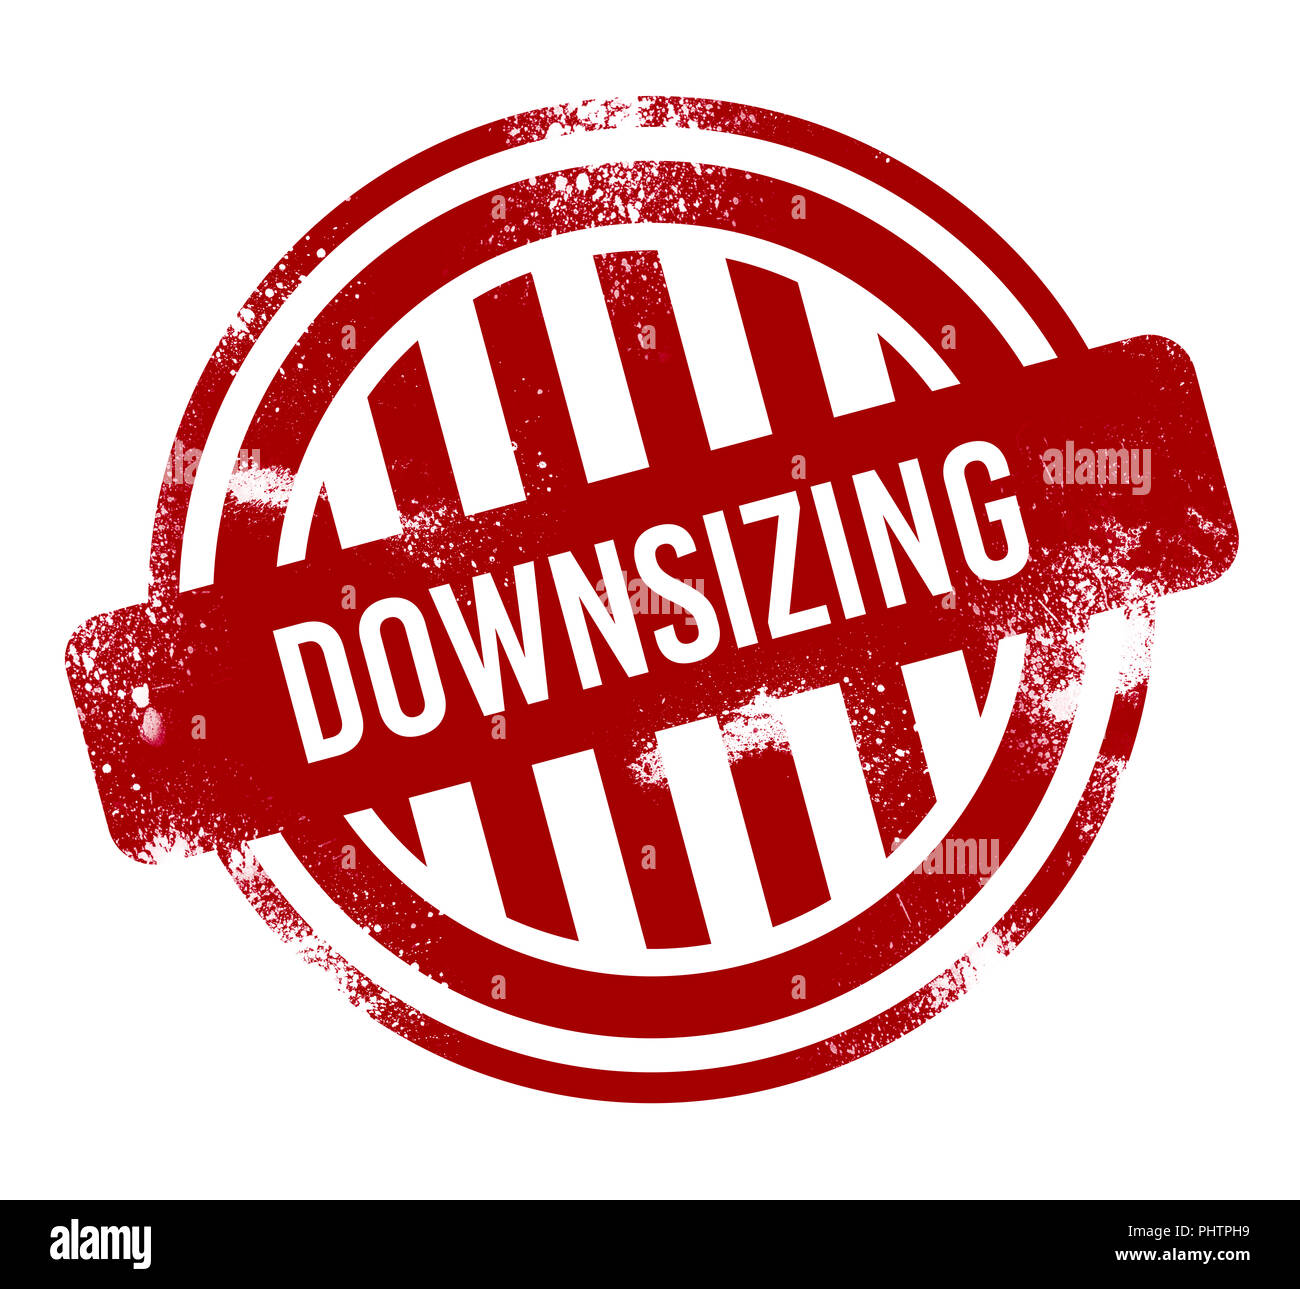 Downsizing - red grunge button, stamp - Stock Image